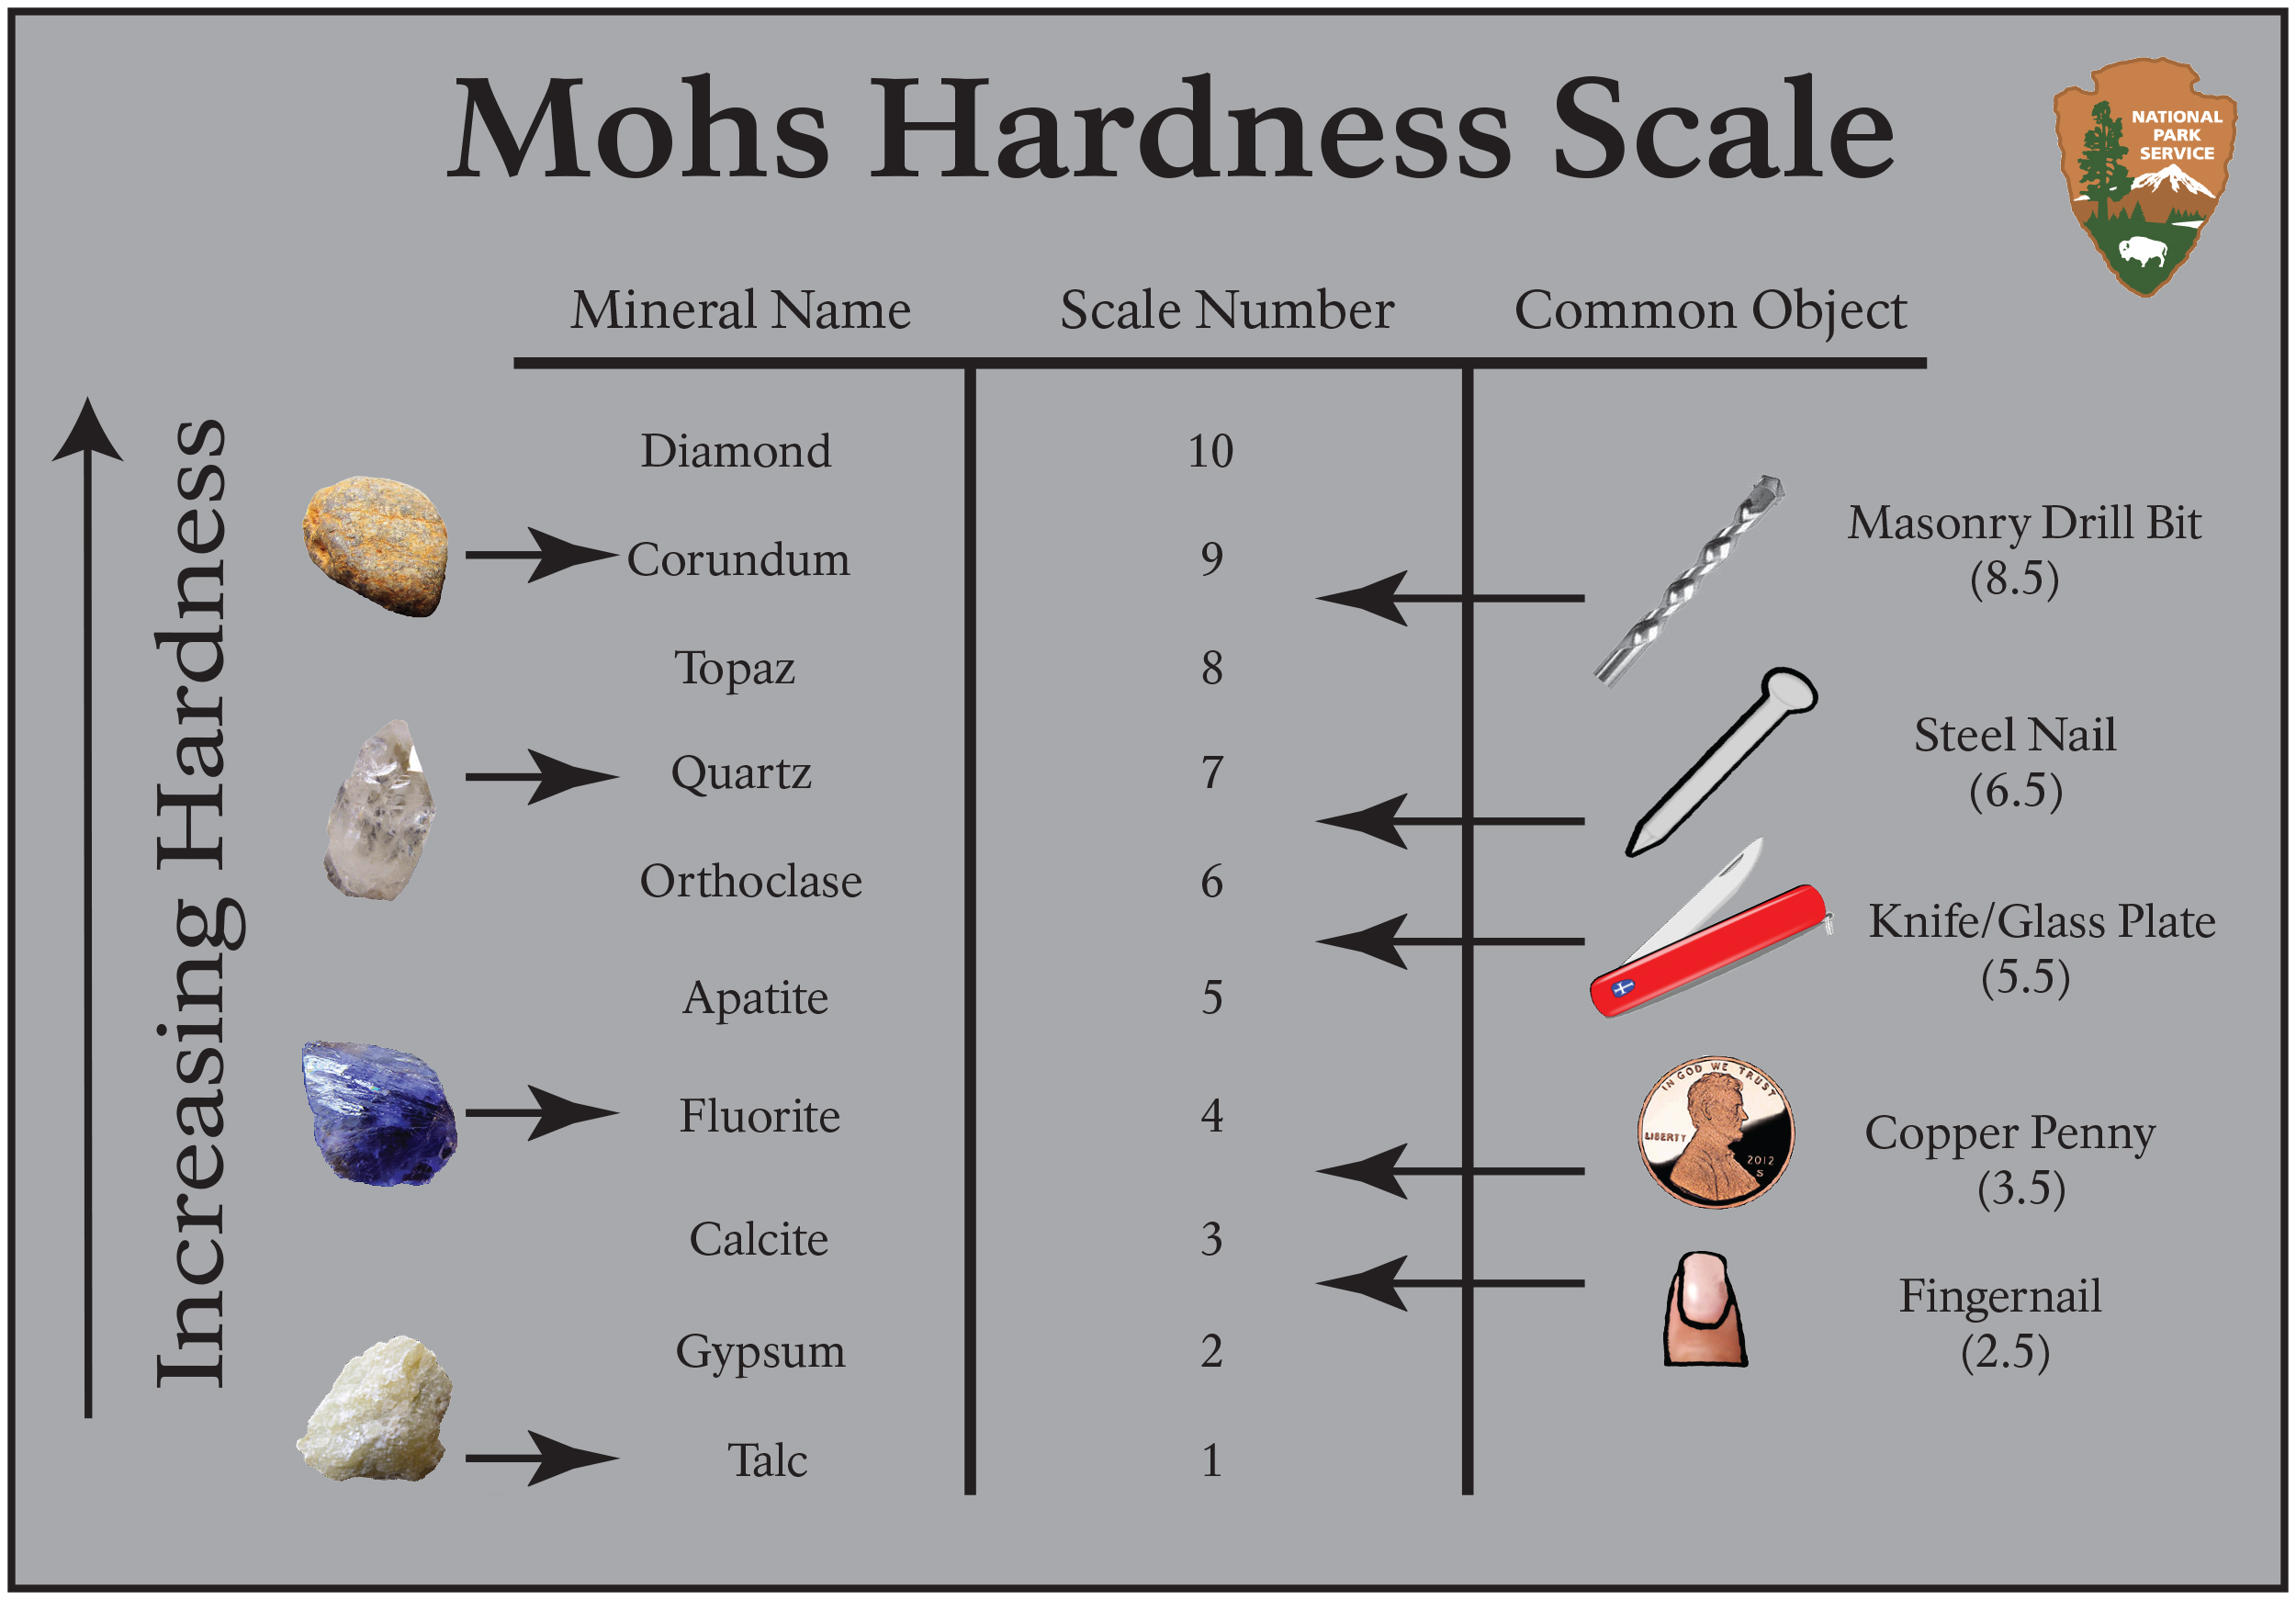 The Mohs Scale